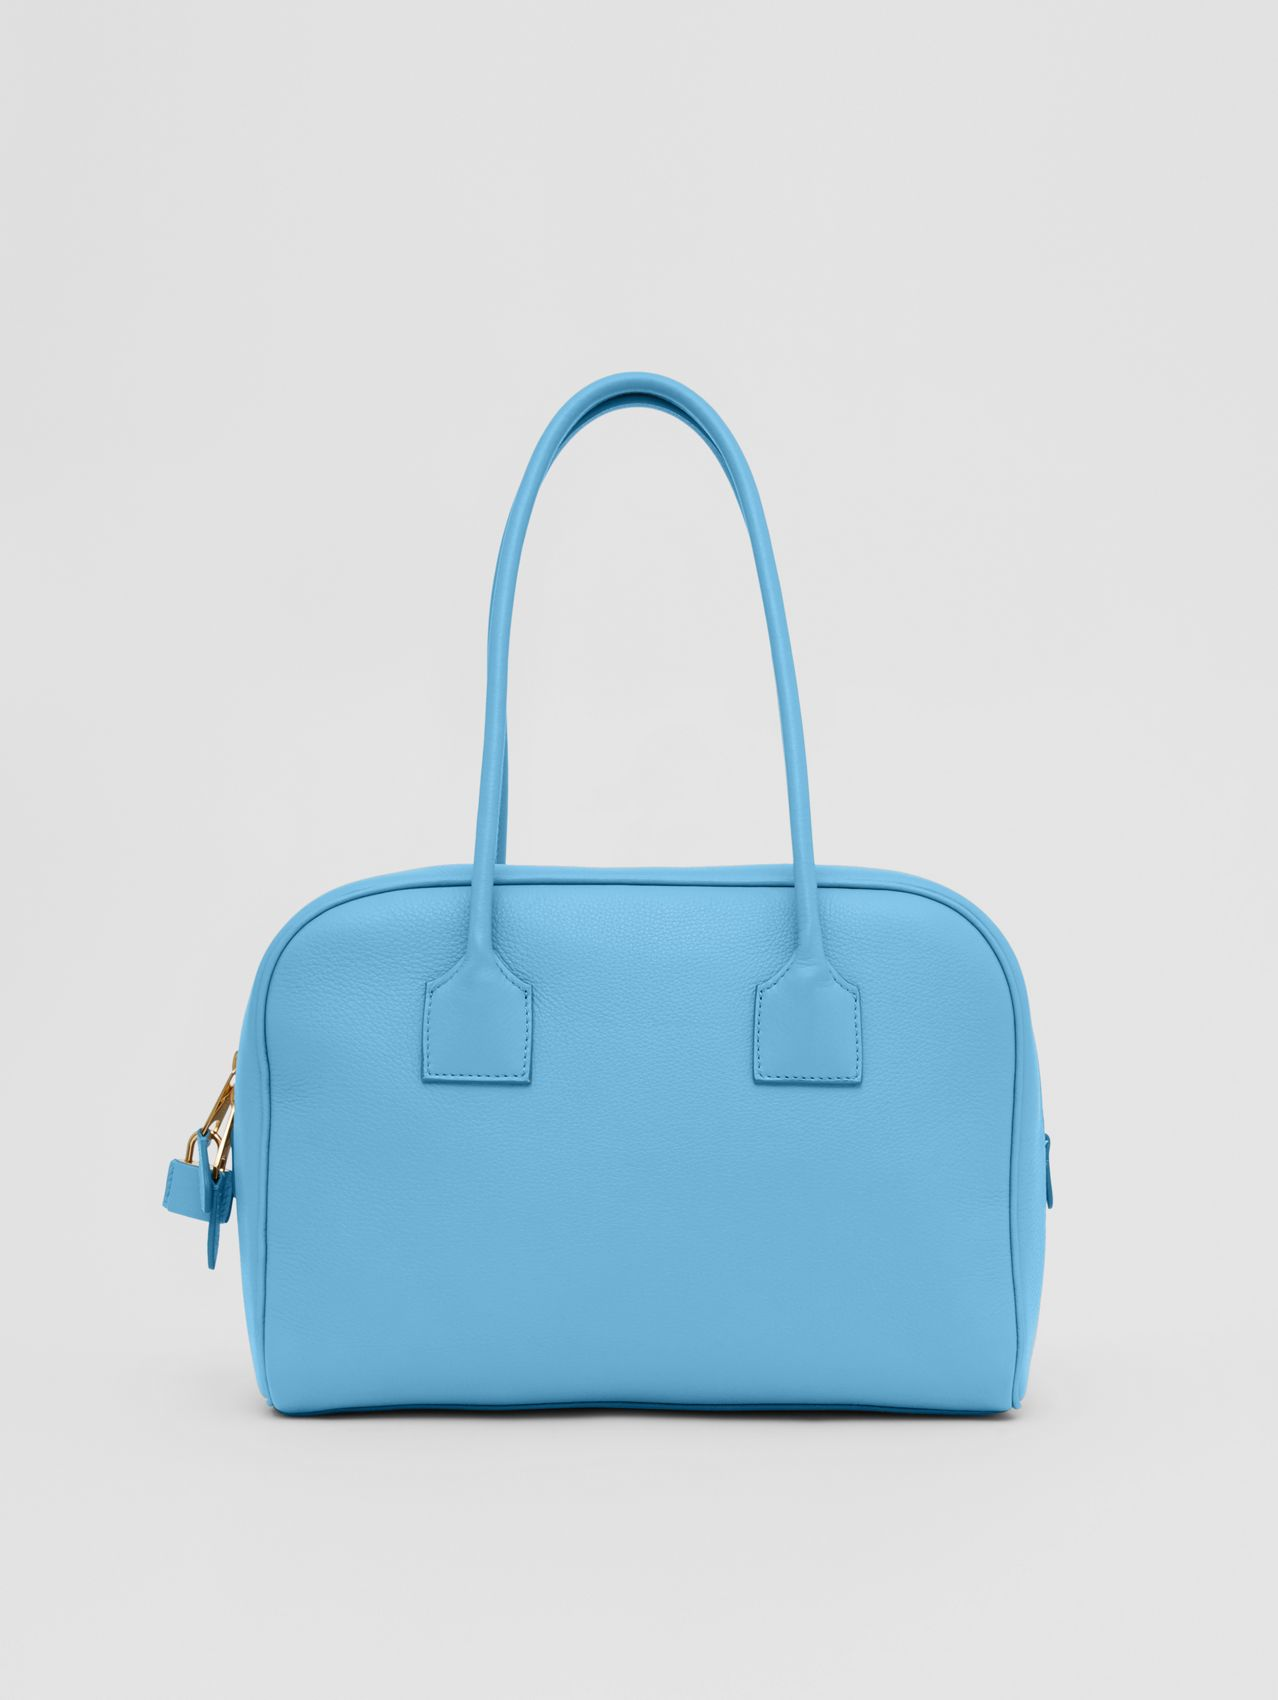 Medium Leather Half Cube Bag in Blue Topaz